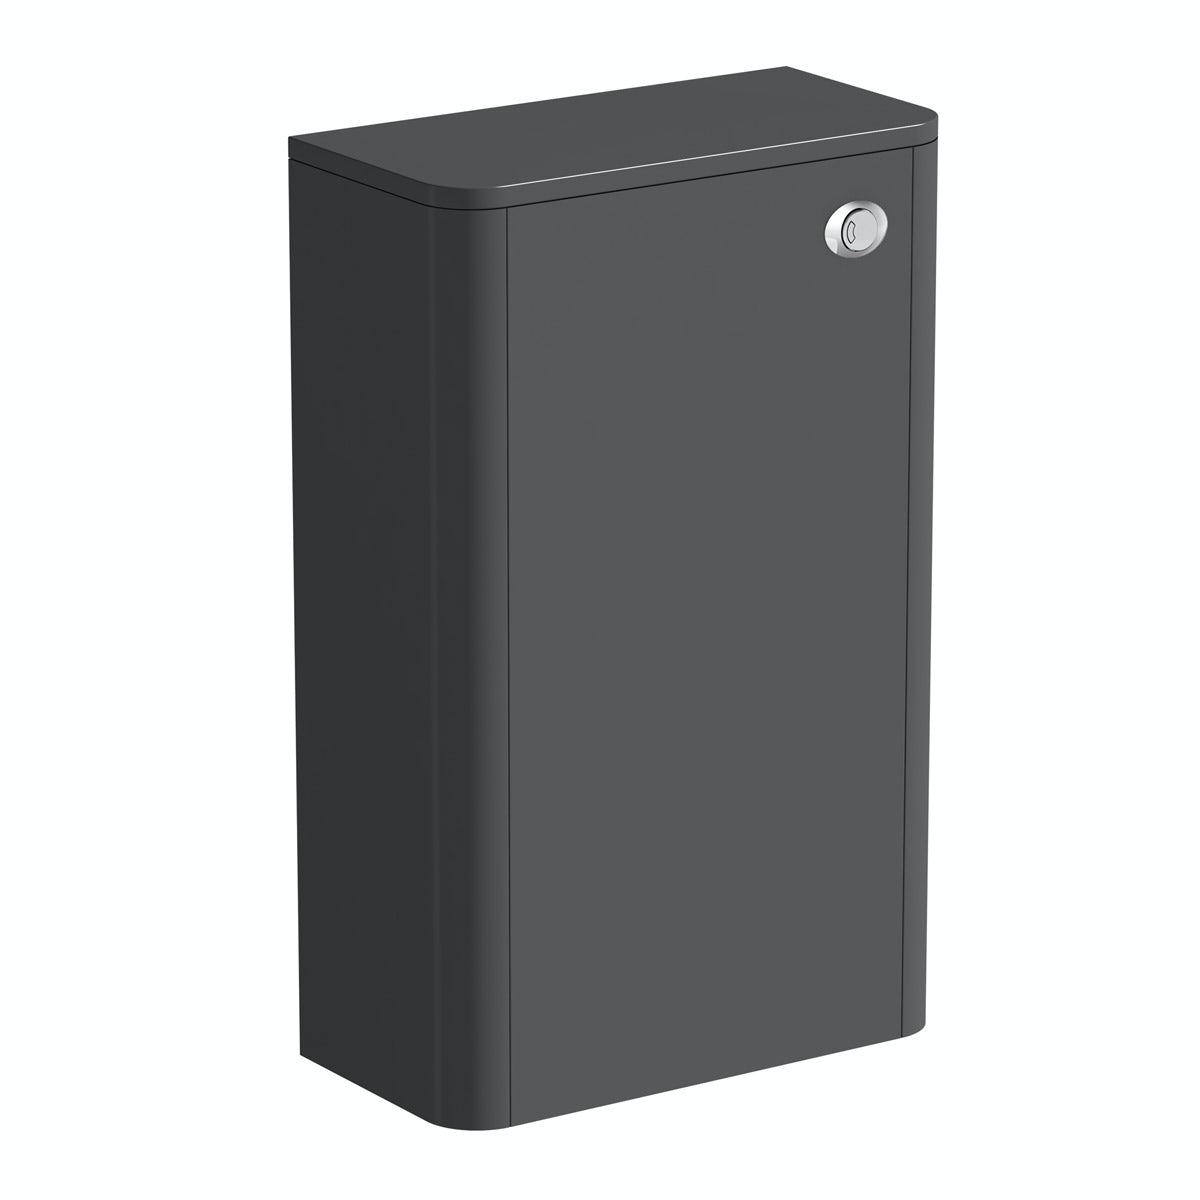 Mode Carter slate grey back to wall toilet unit